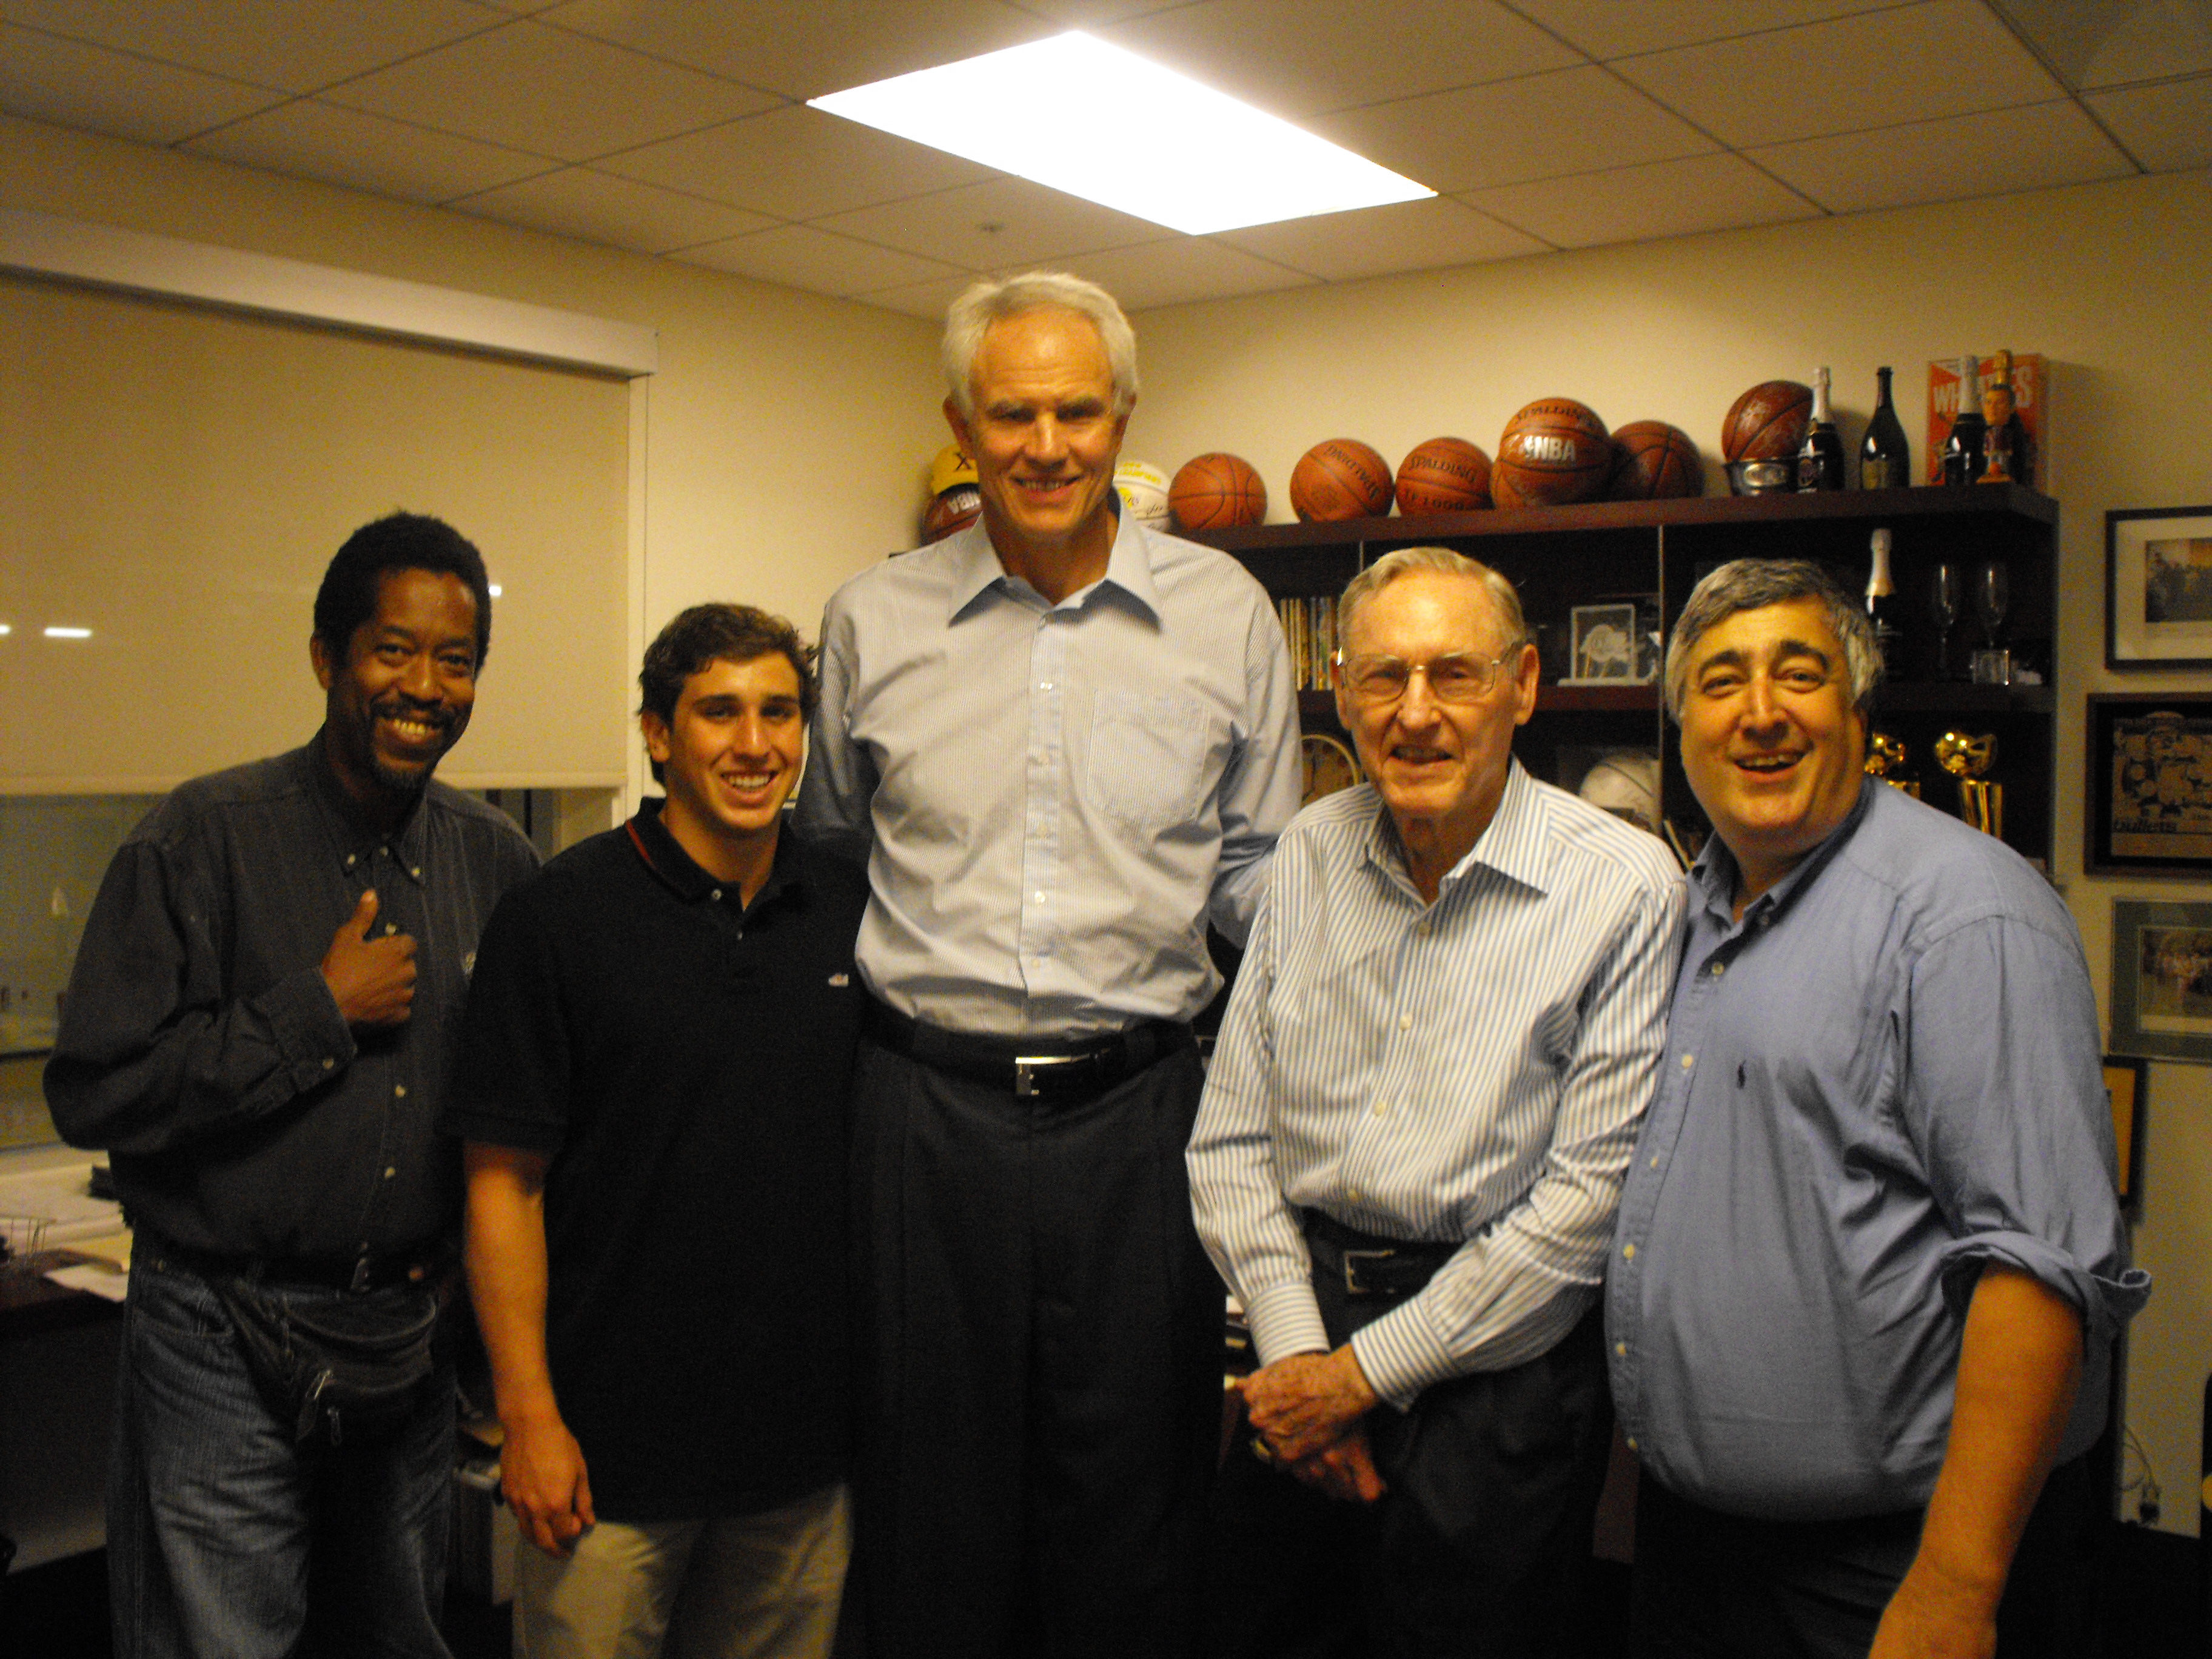 Elliott, Mitch Kupchak & group